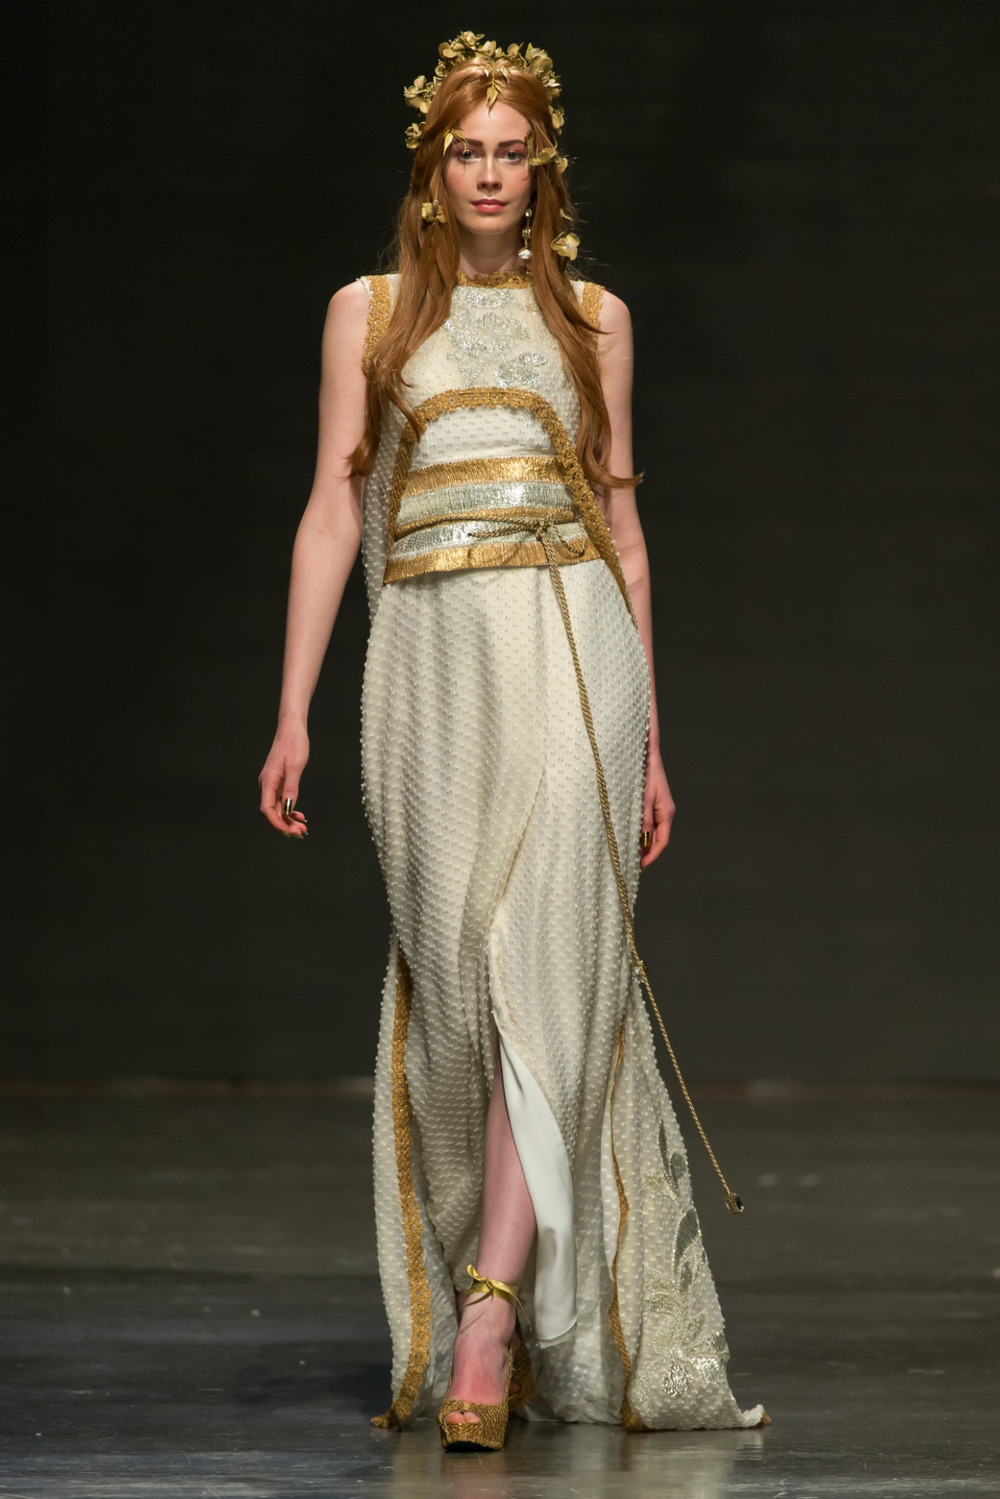 Zareena at Fashion Forward Season 5.